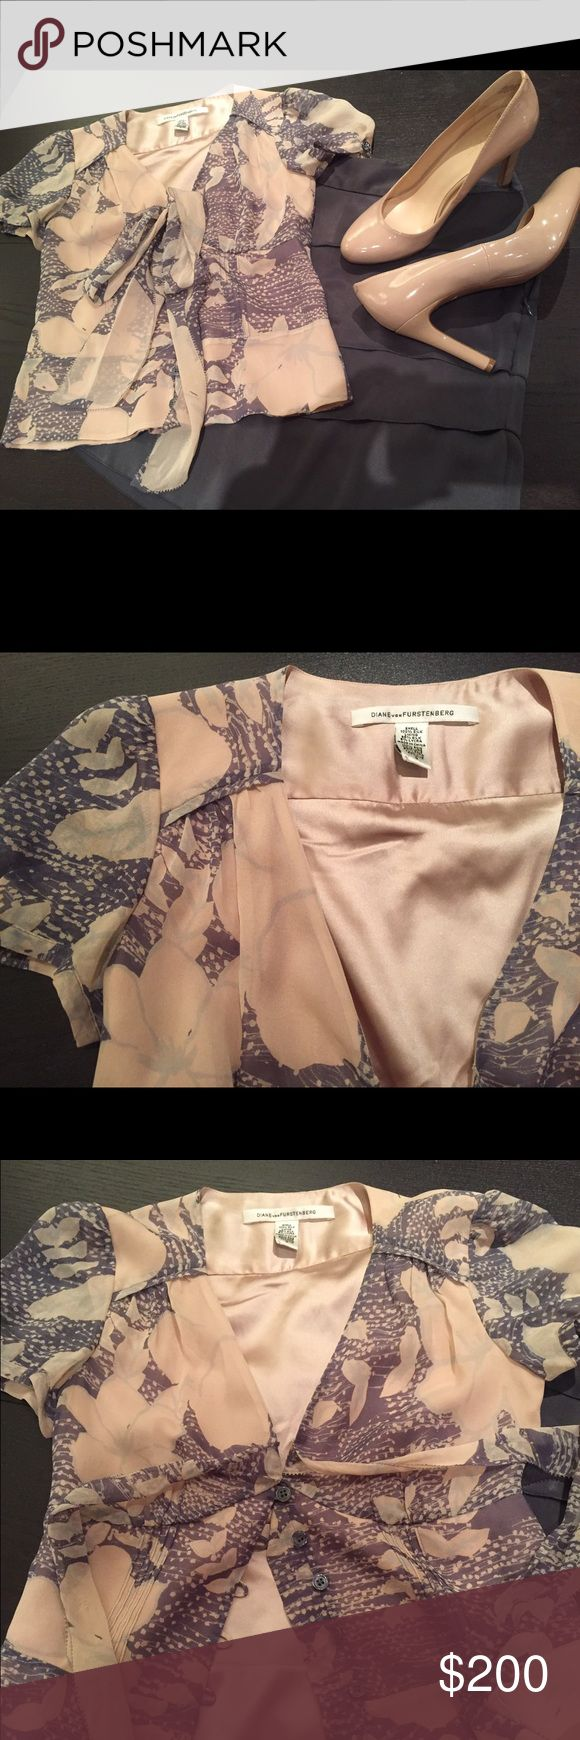 Gorgeous, rare Diane von Furstenberg silk top This is your opportunity to buy one of a kind top at a joke price. Blush and slate color. Worn only once at a wedding. 100% silk that flows like the Bahamas breeze. Fitted to give you a marvelous figure. Front buttons. No flaws! Pet & smoke free. Make an offer!! Diane von Furstenberg Tops Blouses